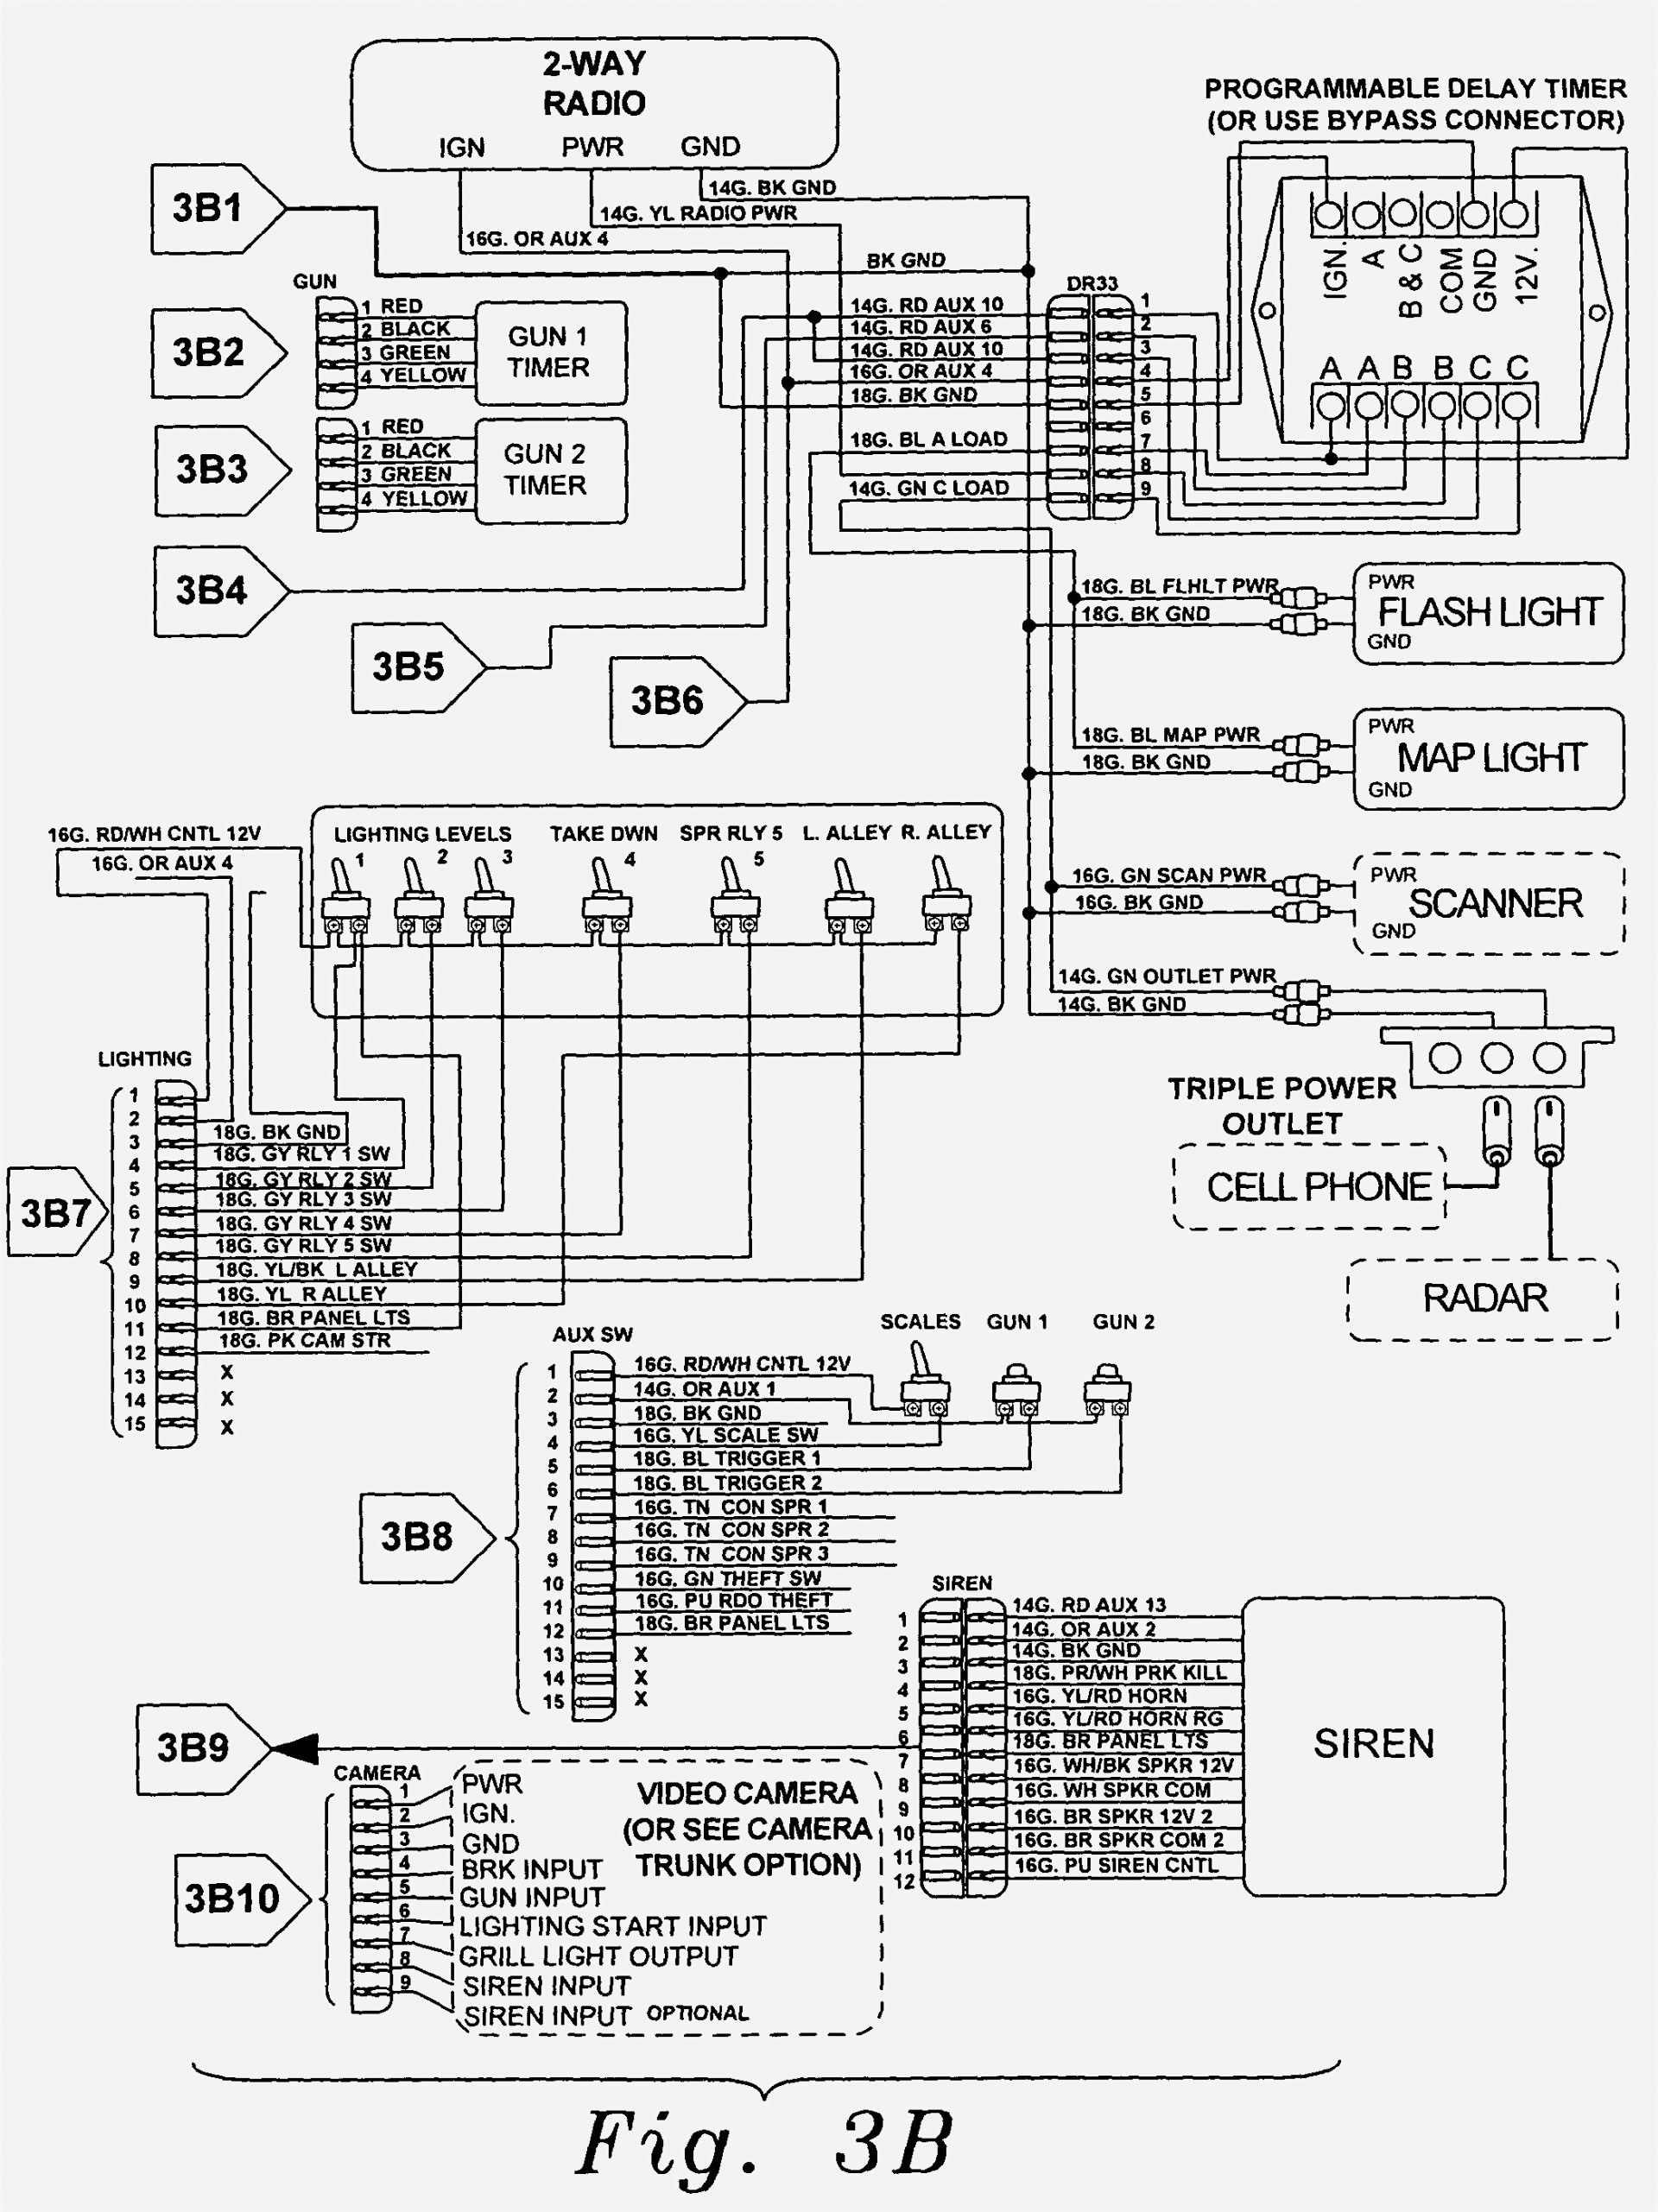 hight resolution of wiring edge diagram whelen ll288000 wiring diagram expert whelen 9m wiring diagram share circuit diagrams wiring